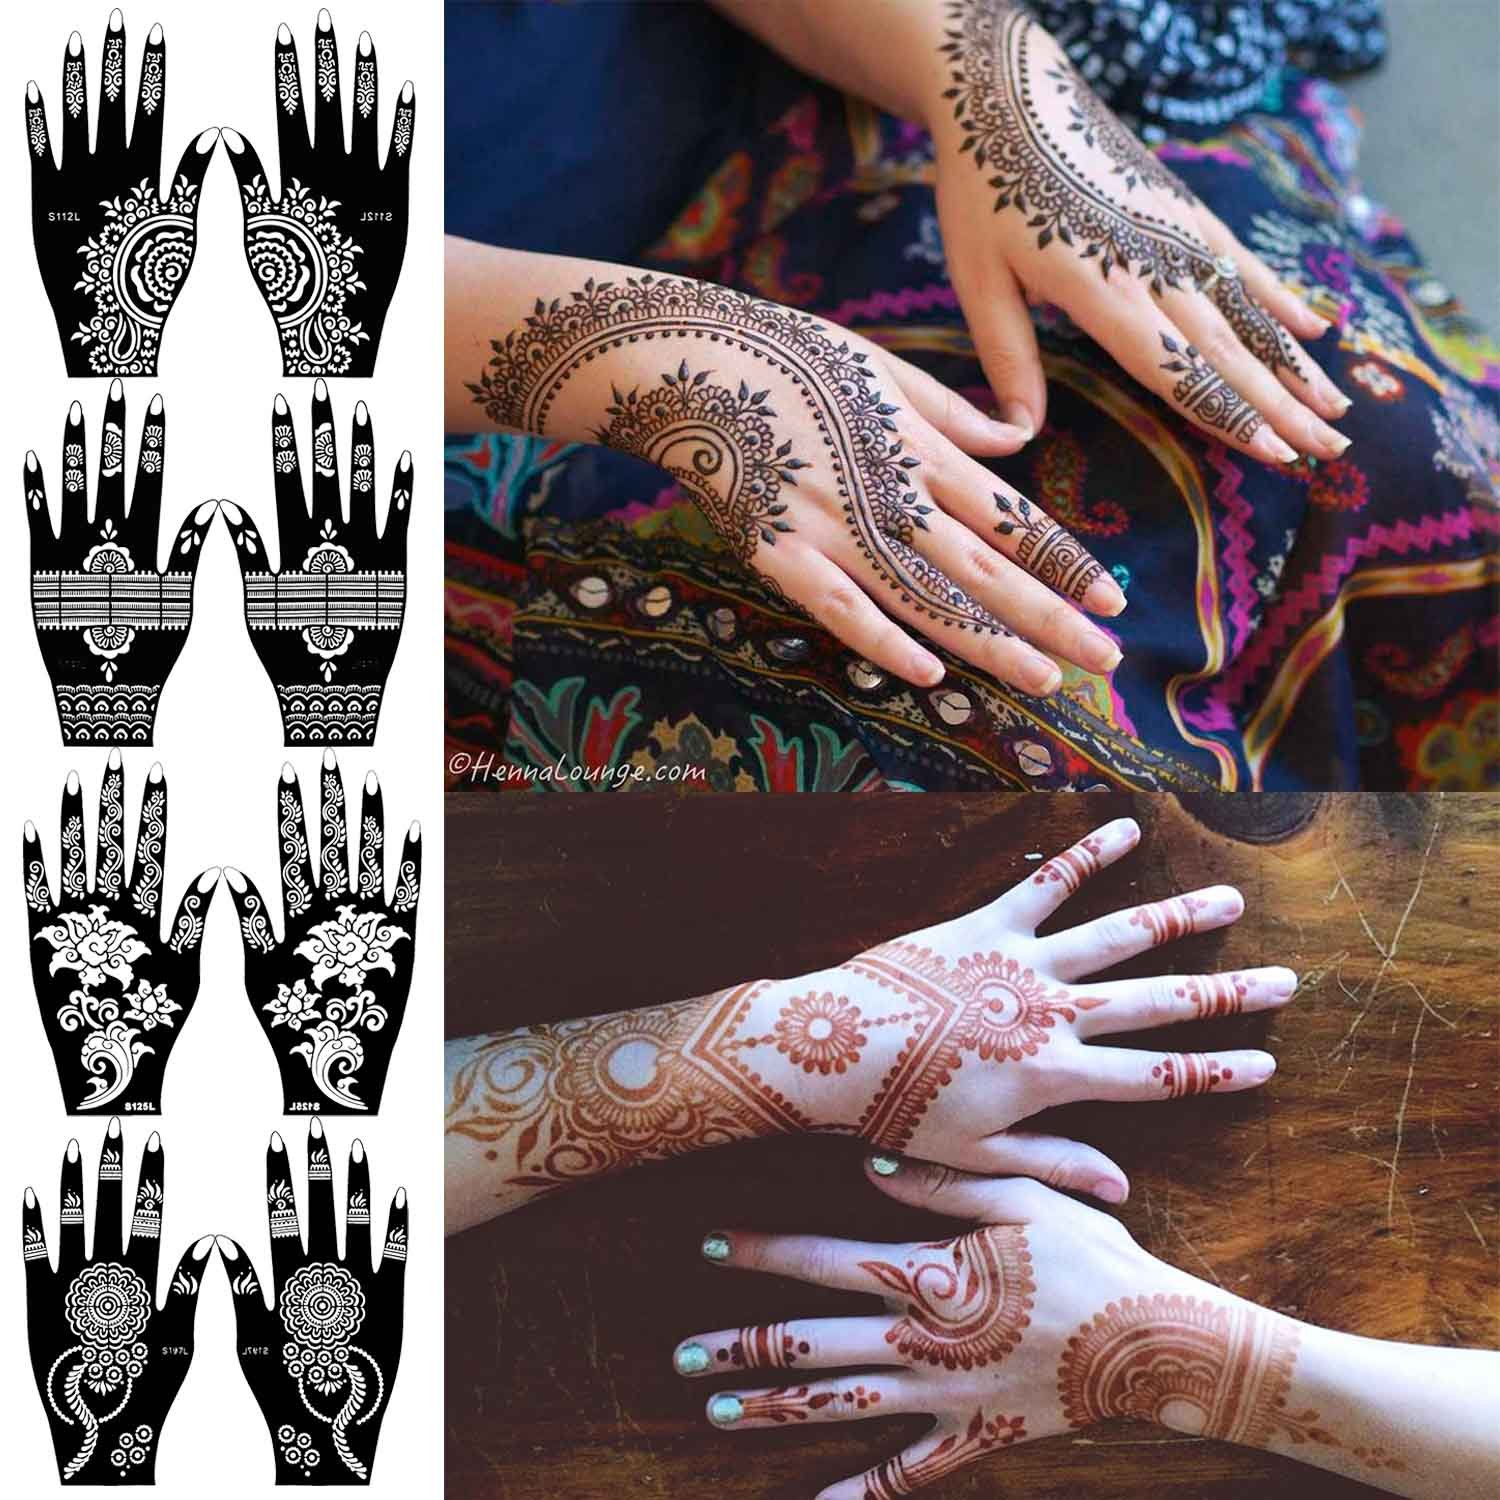 COKOHAPPY 8 Sheets Hand Indian Painting Tattoo Stencil Self-Adhesive Body Art Designs for Hands - Temporary Indian Arabian Tattoo Reusable Stickers